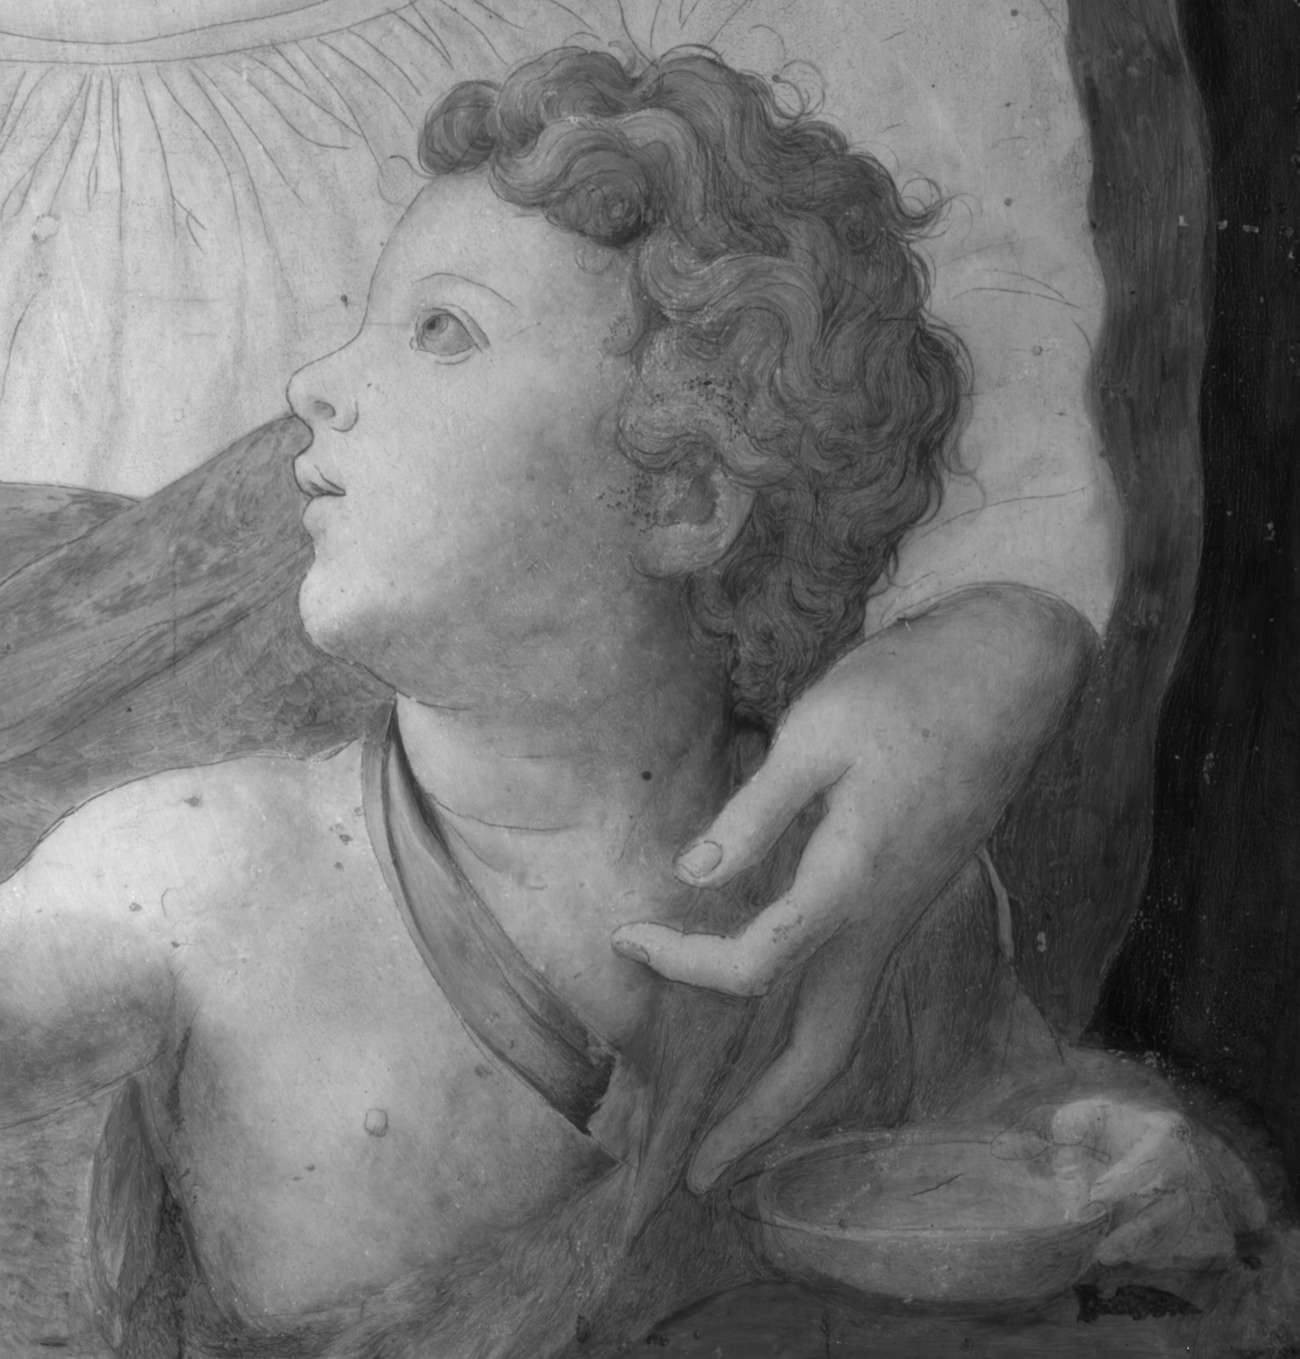 Black and white close-up of the child from the painting with curly hair